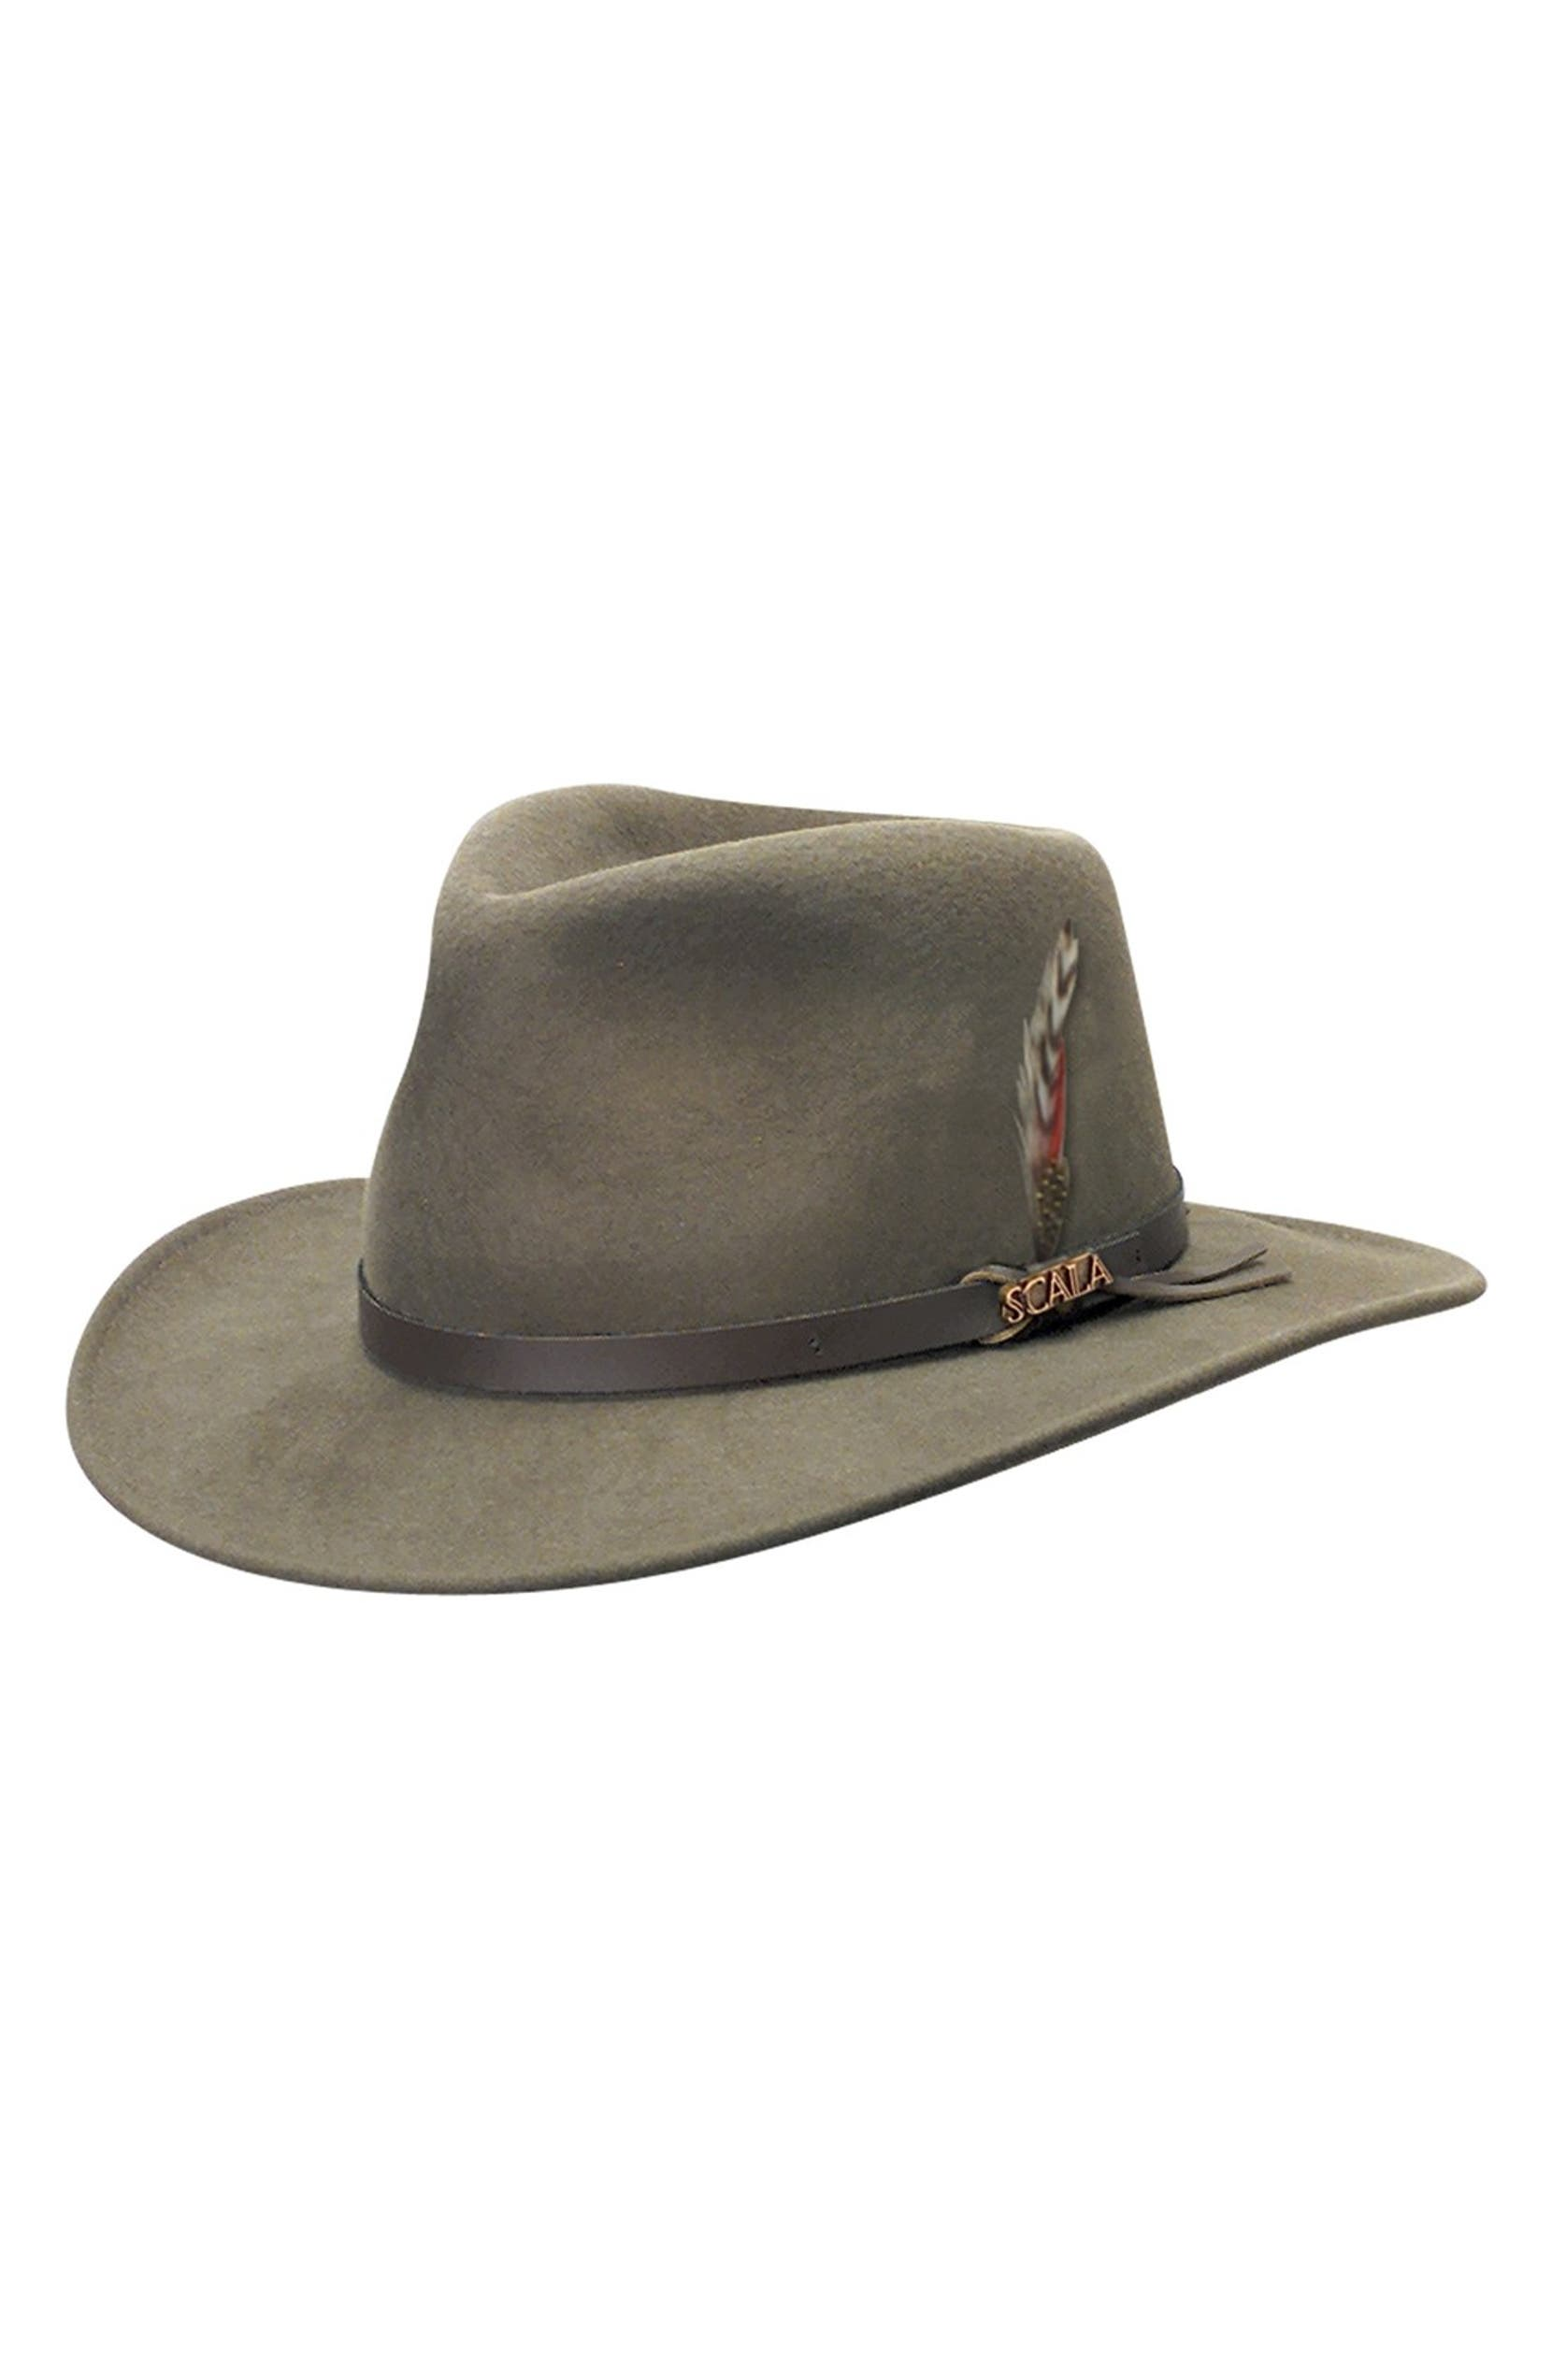 95dd6681 Scala 'Classico' Crushable Felt Outback Hat | Nordstrom